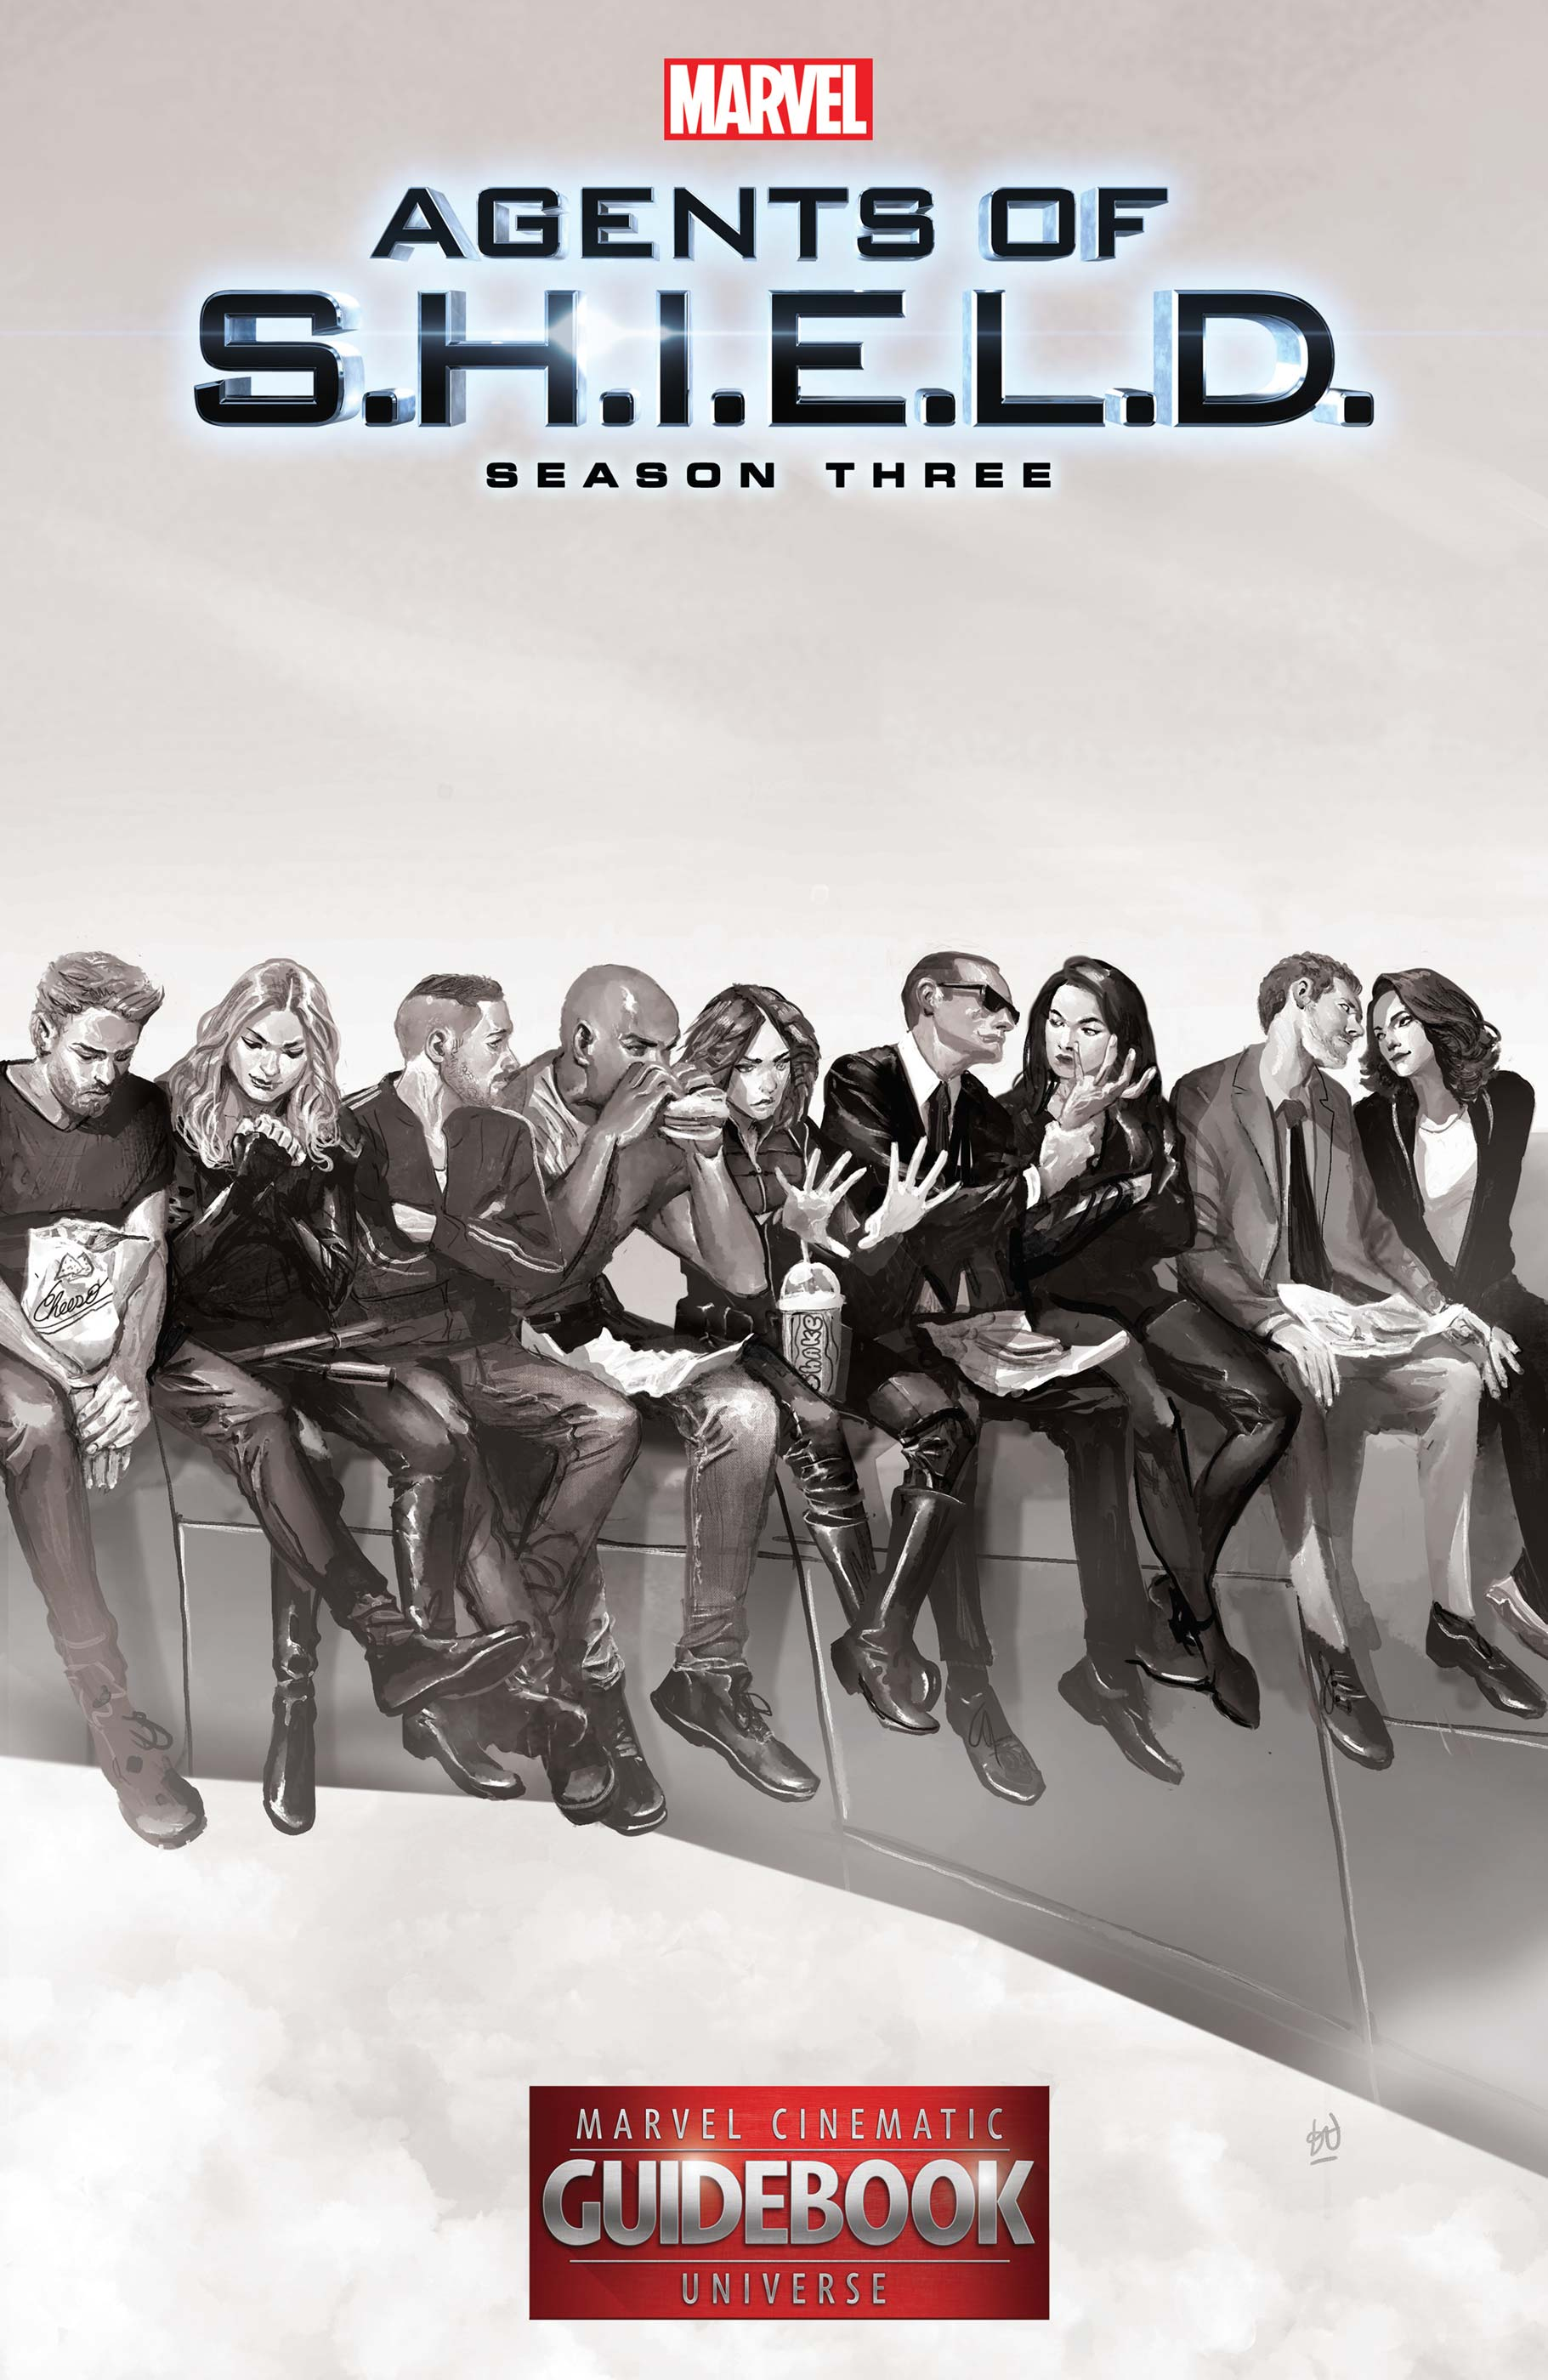 Guidebook to the Marvel Cinematic Universe - Marvel's Agents of S.H.I.E.L.D. Season Three (2016)